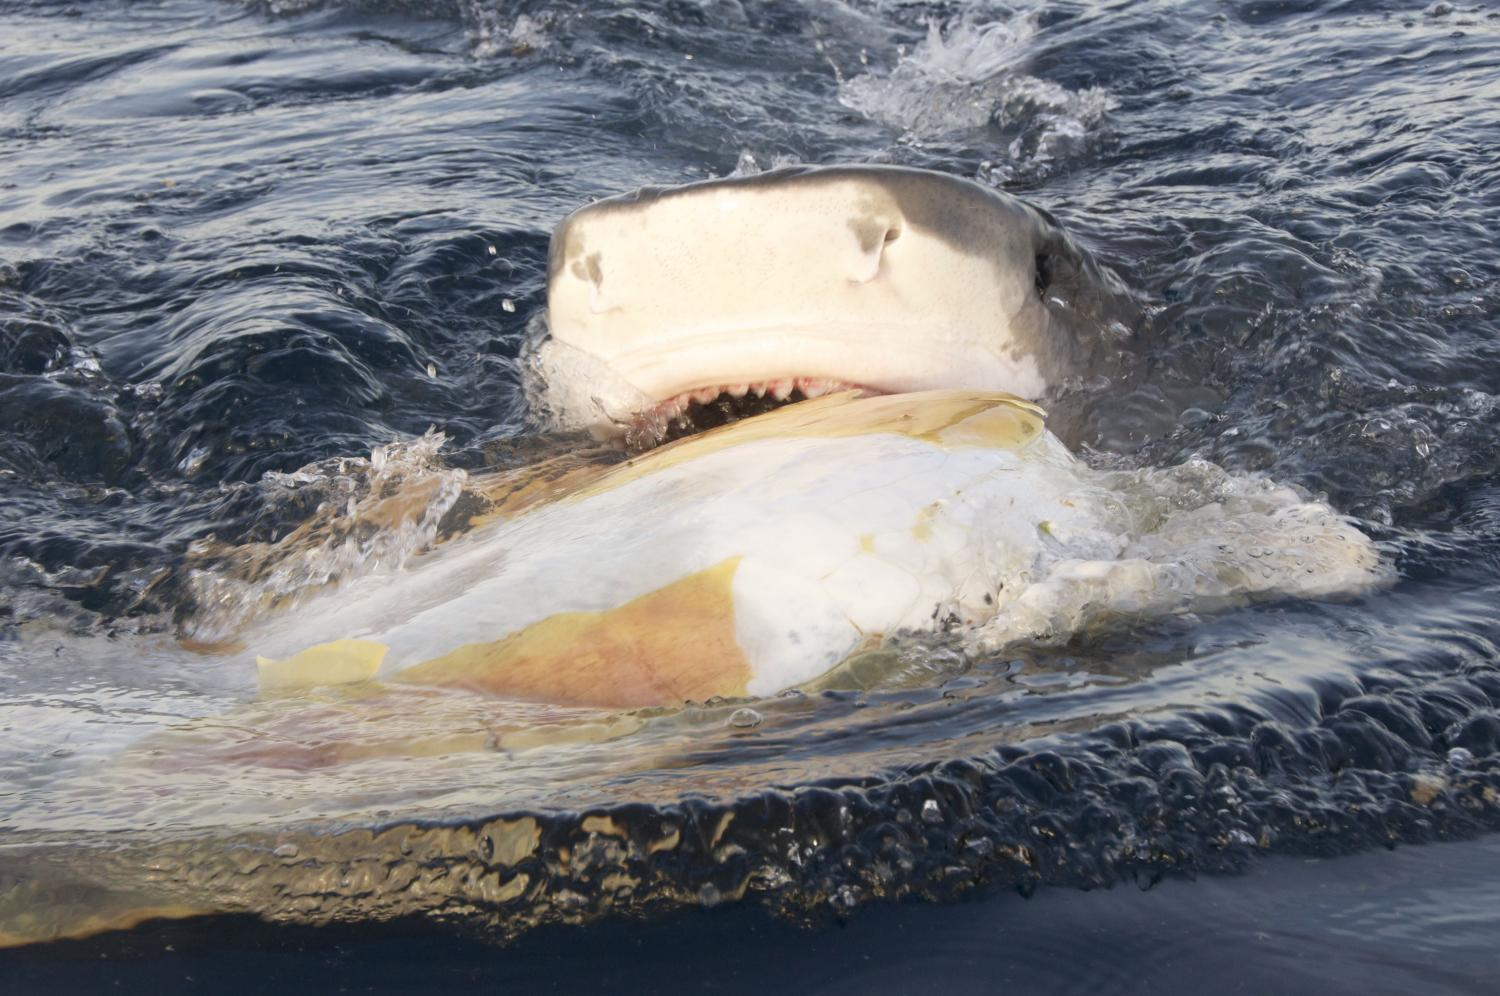 Threats and Conservation | Sea Turtle Exploration |Tiger Sharks Attack Turtle